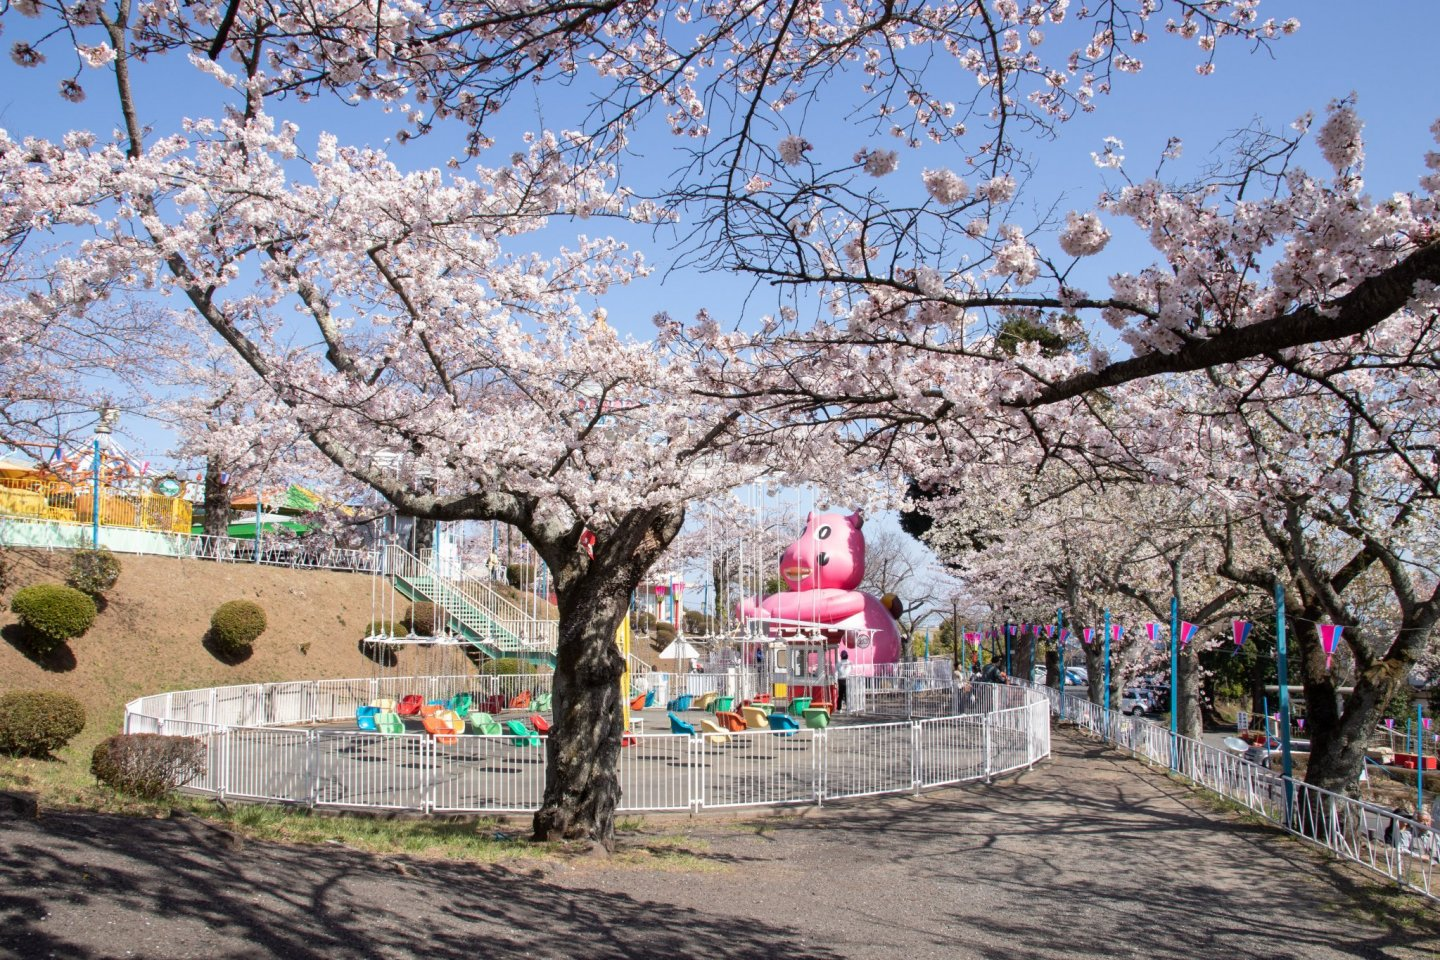 Around 1000 cherry trees cover the grounds at Kamine Park